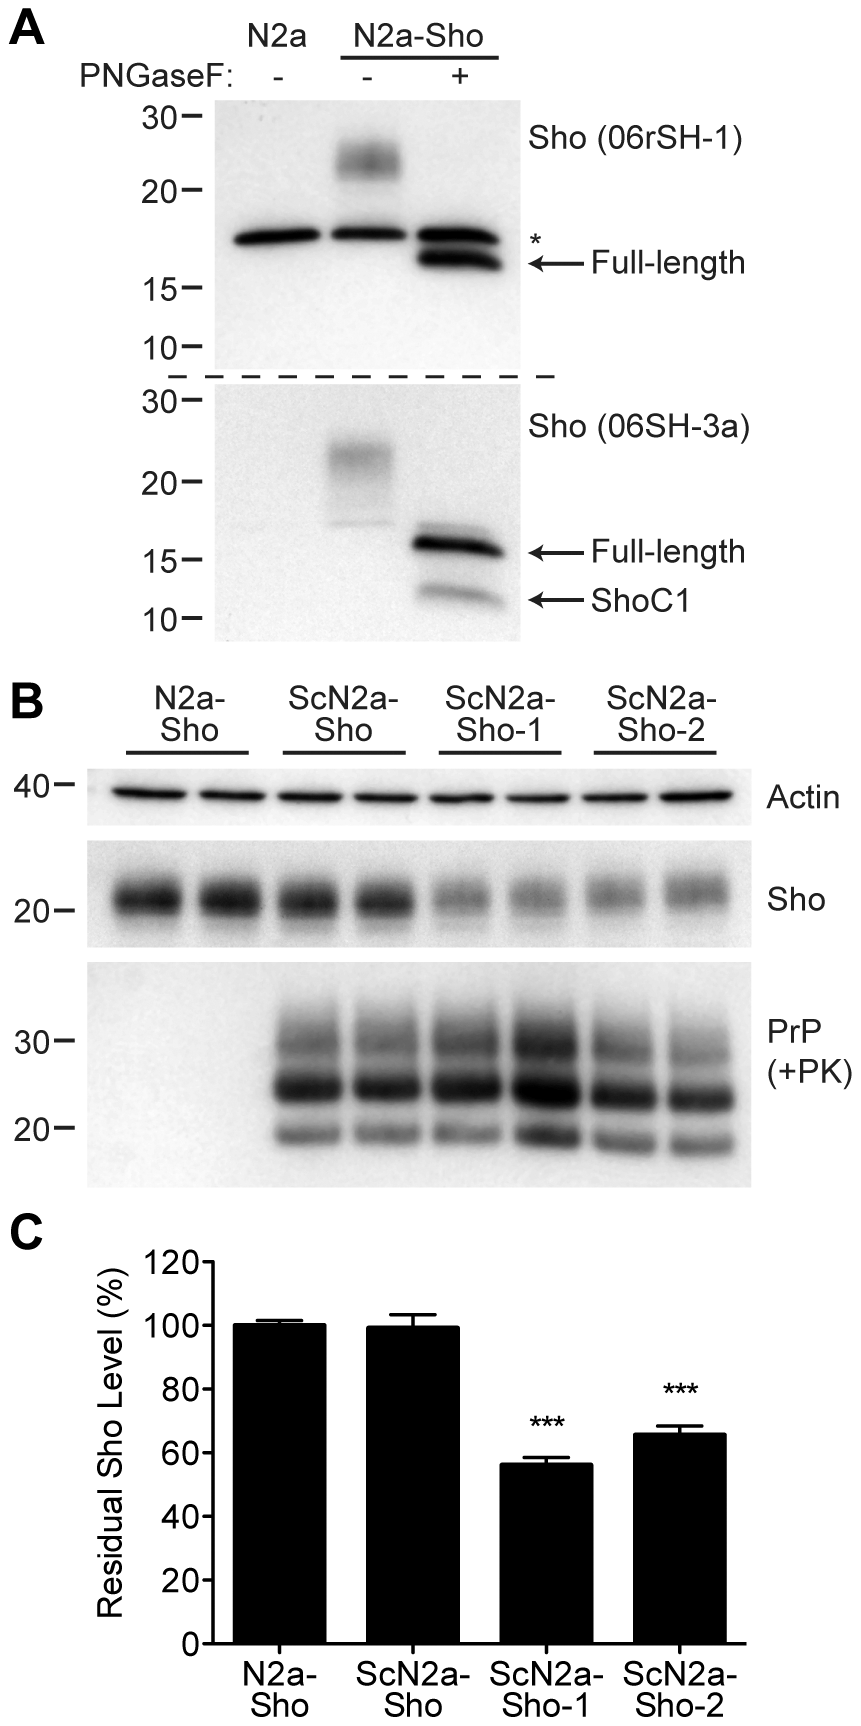 Decreased Sho levels in ScN2a-Sho cells.